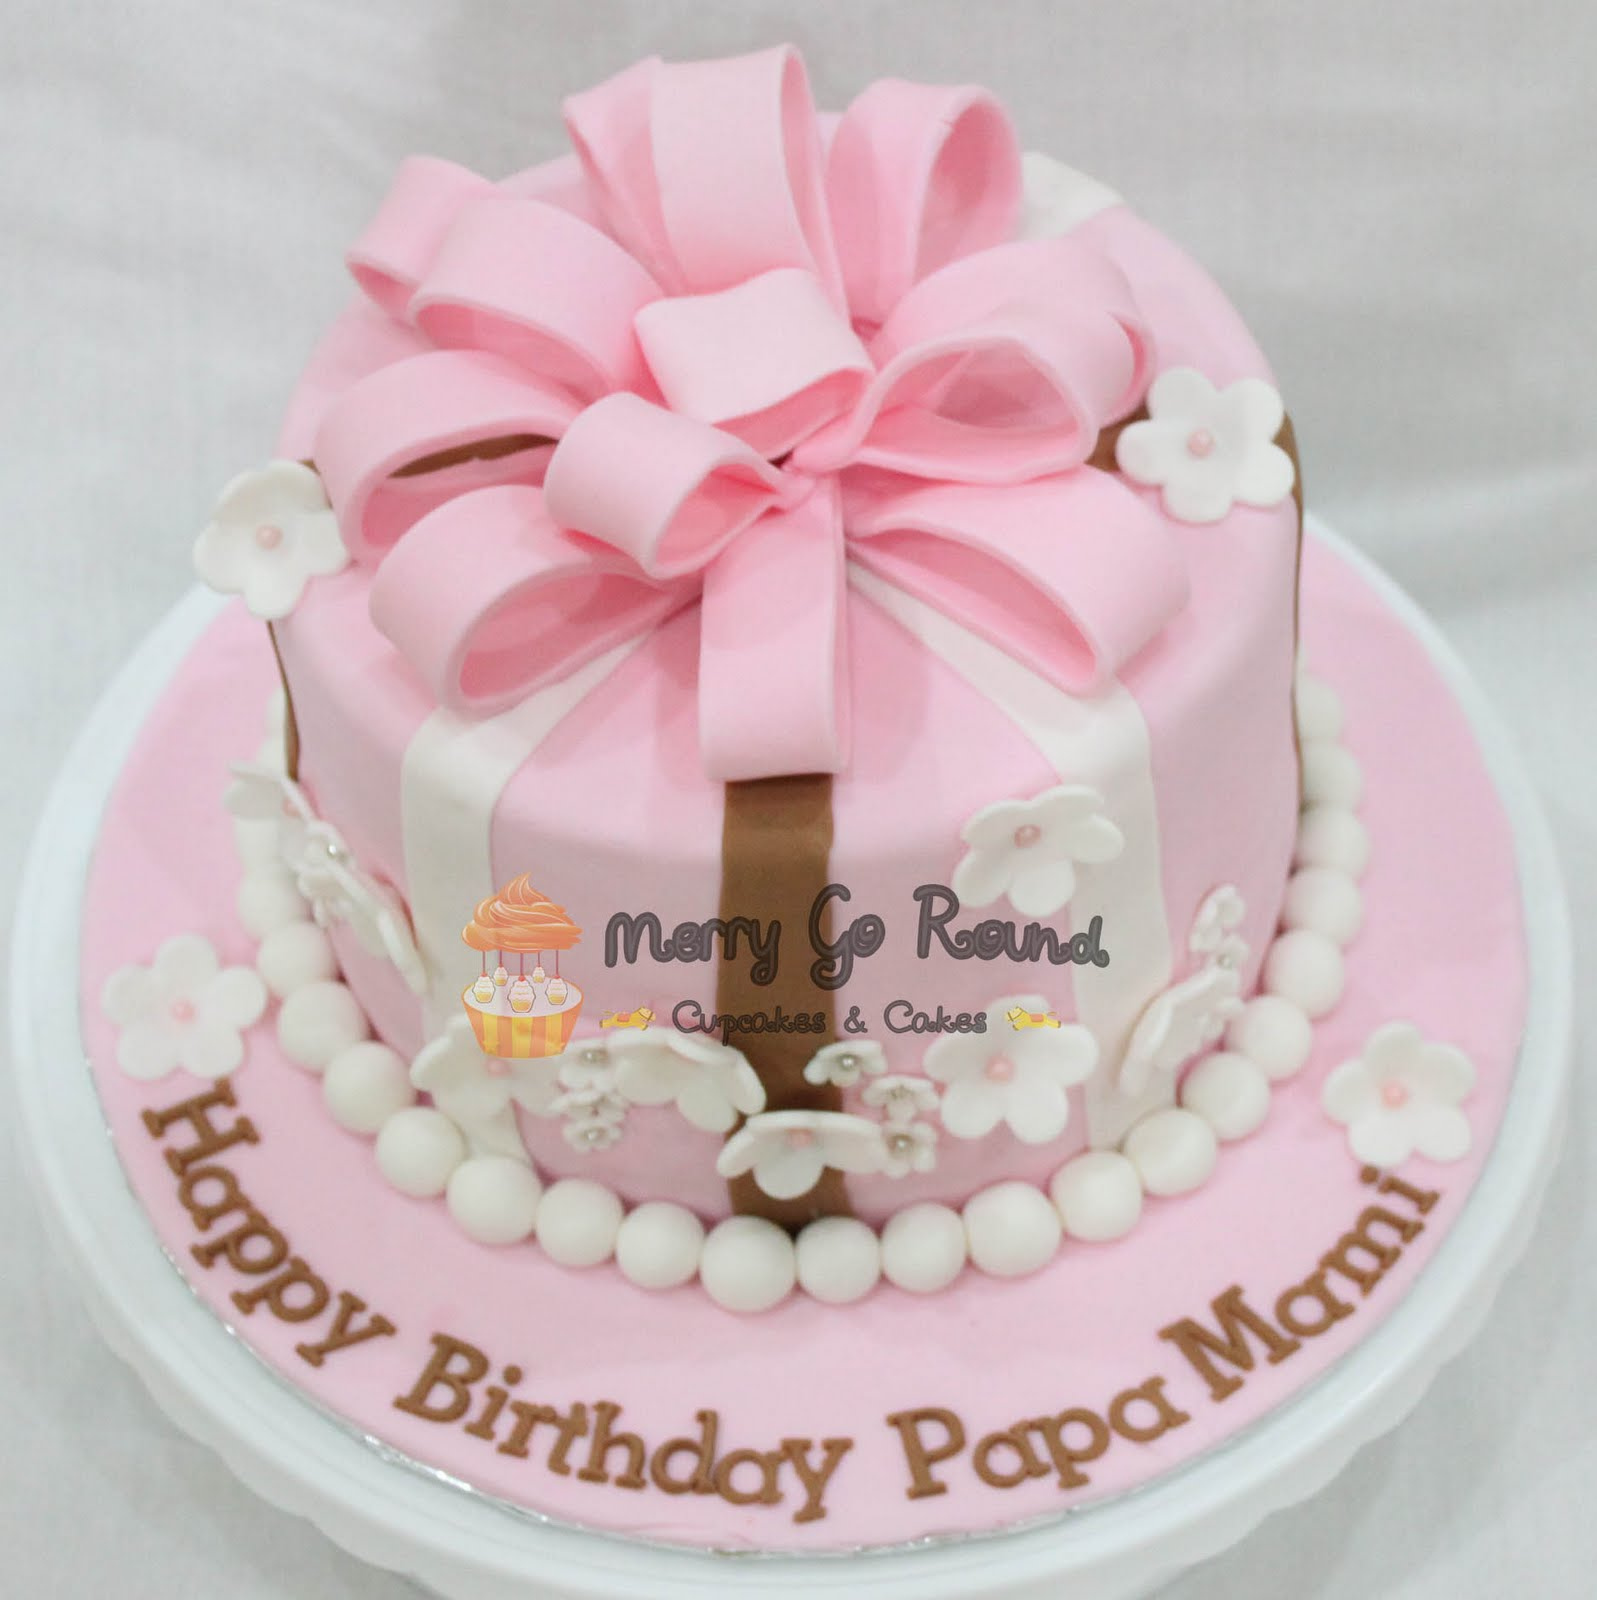 Birthday Cake Gift Images : Merry Go Round - Cupcakes & Cakes: Pearly Gift Box ...